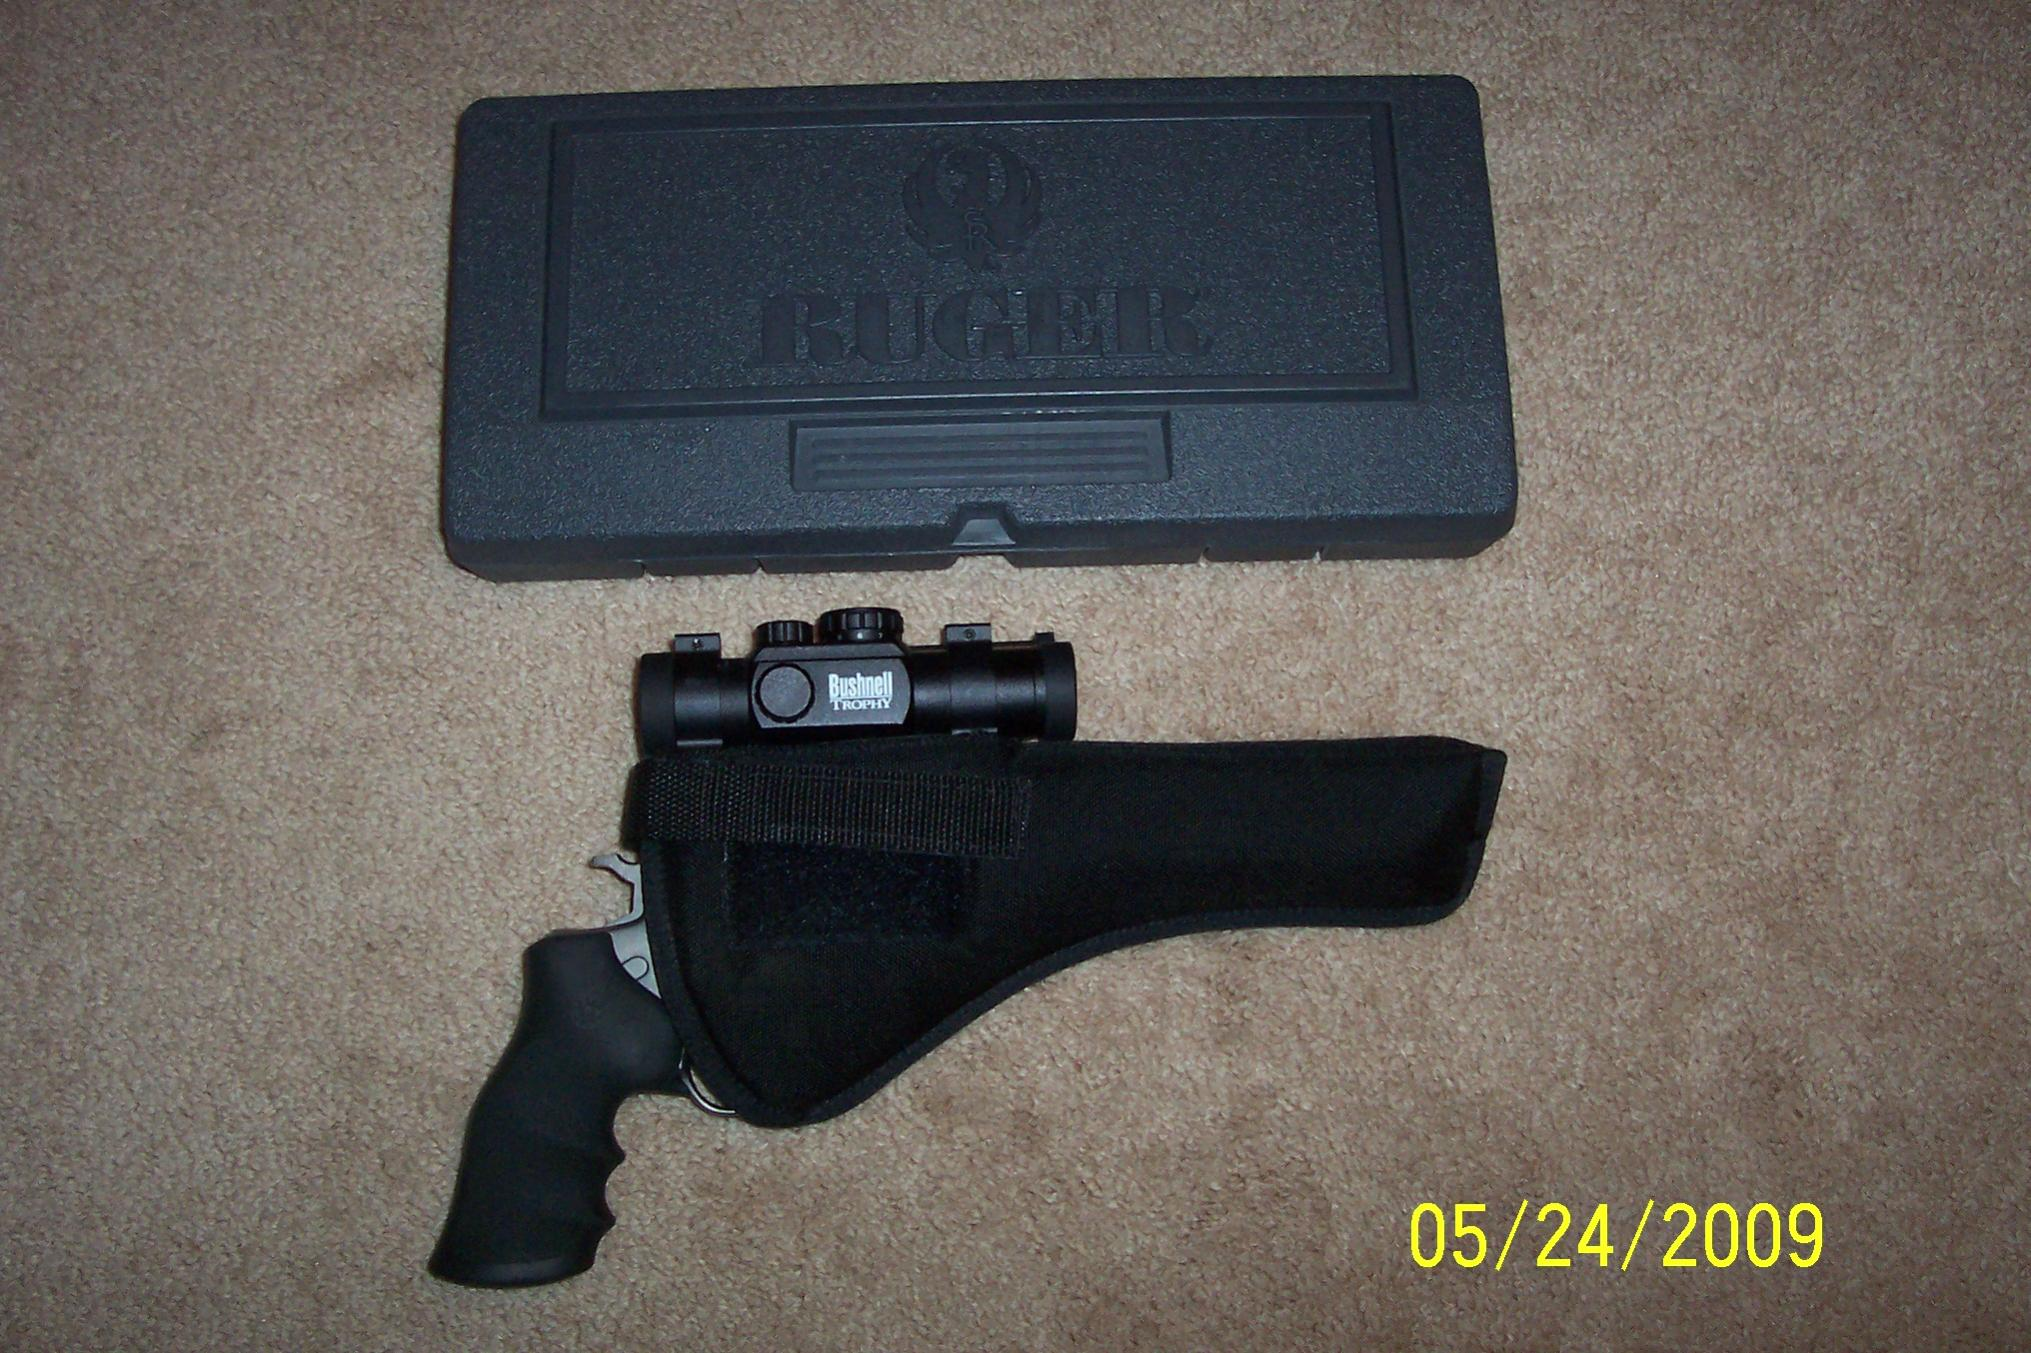 WTS Practically New Ruger Super Red Hawk .454 Casull w/ Bushnell Red Dot Scope : [NC]-100_3989.jpg